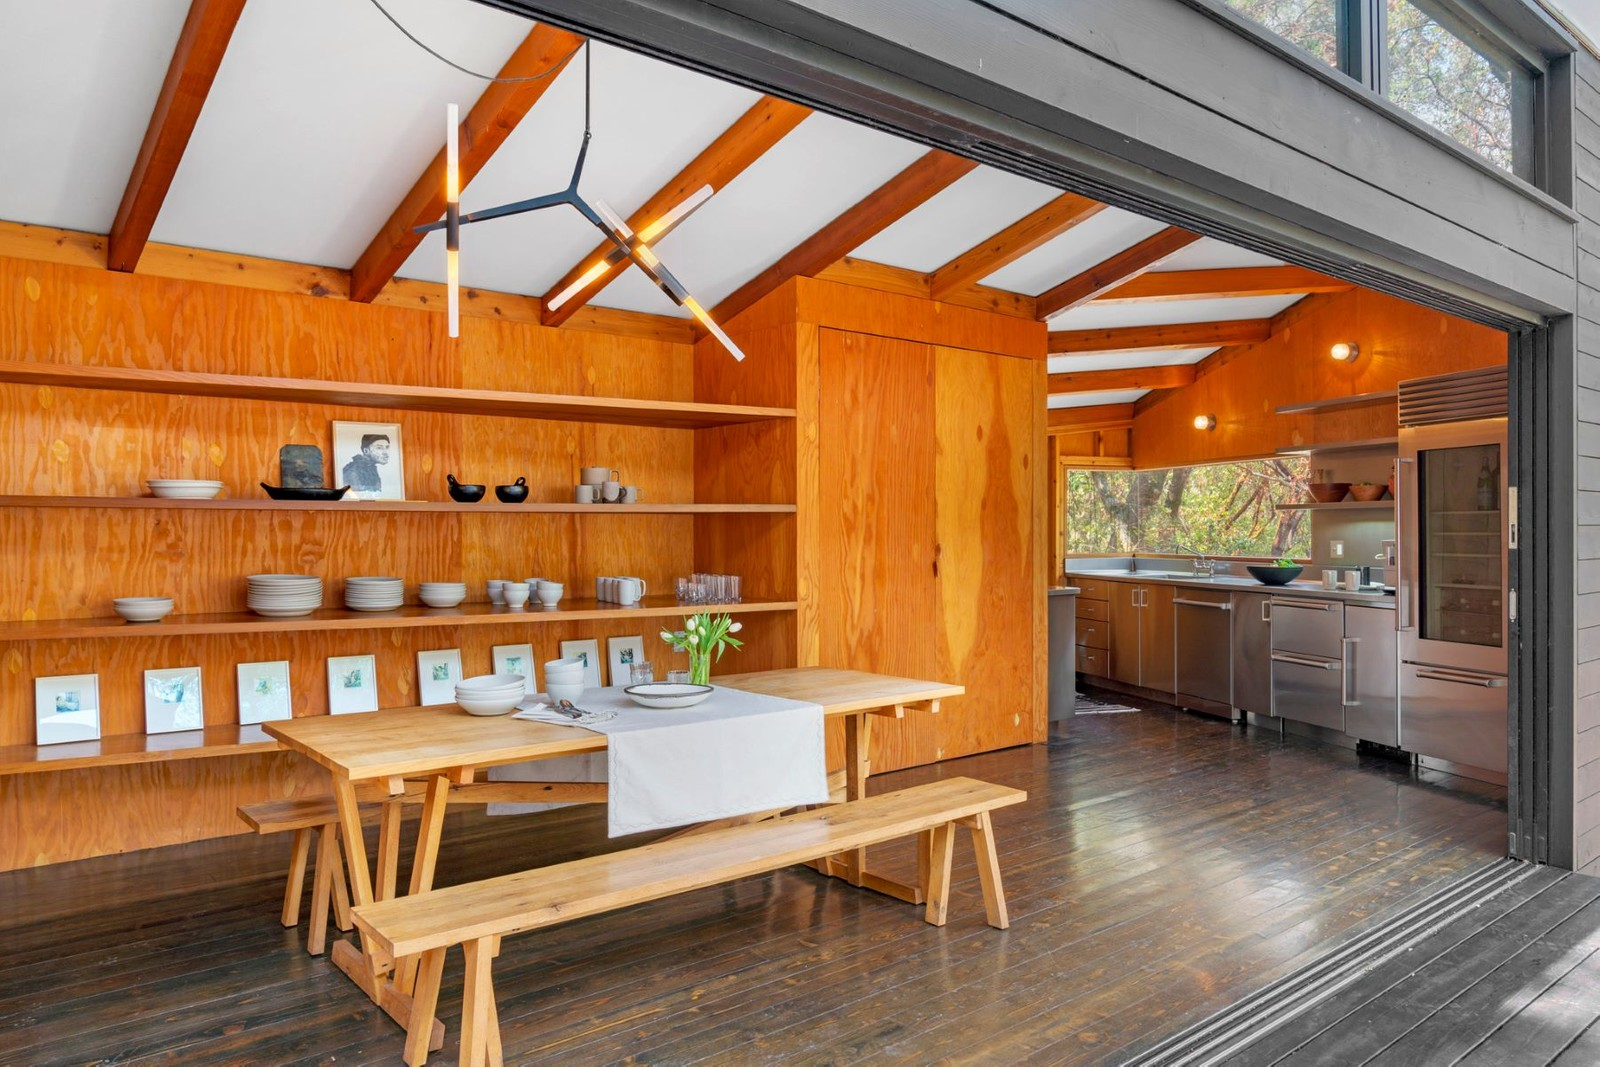 The Forest Home sits on a 40-acre estate near Healdsburg and comprises a cluster of angular, interconnected cabins that unfurl as a series of private and public indoor/outdoor spaces.